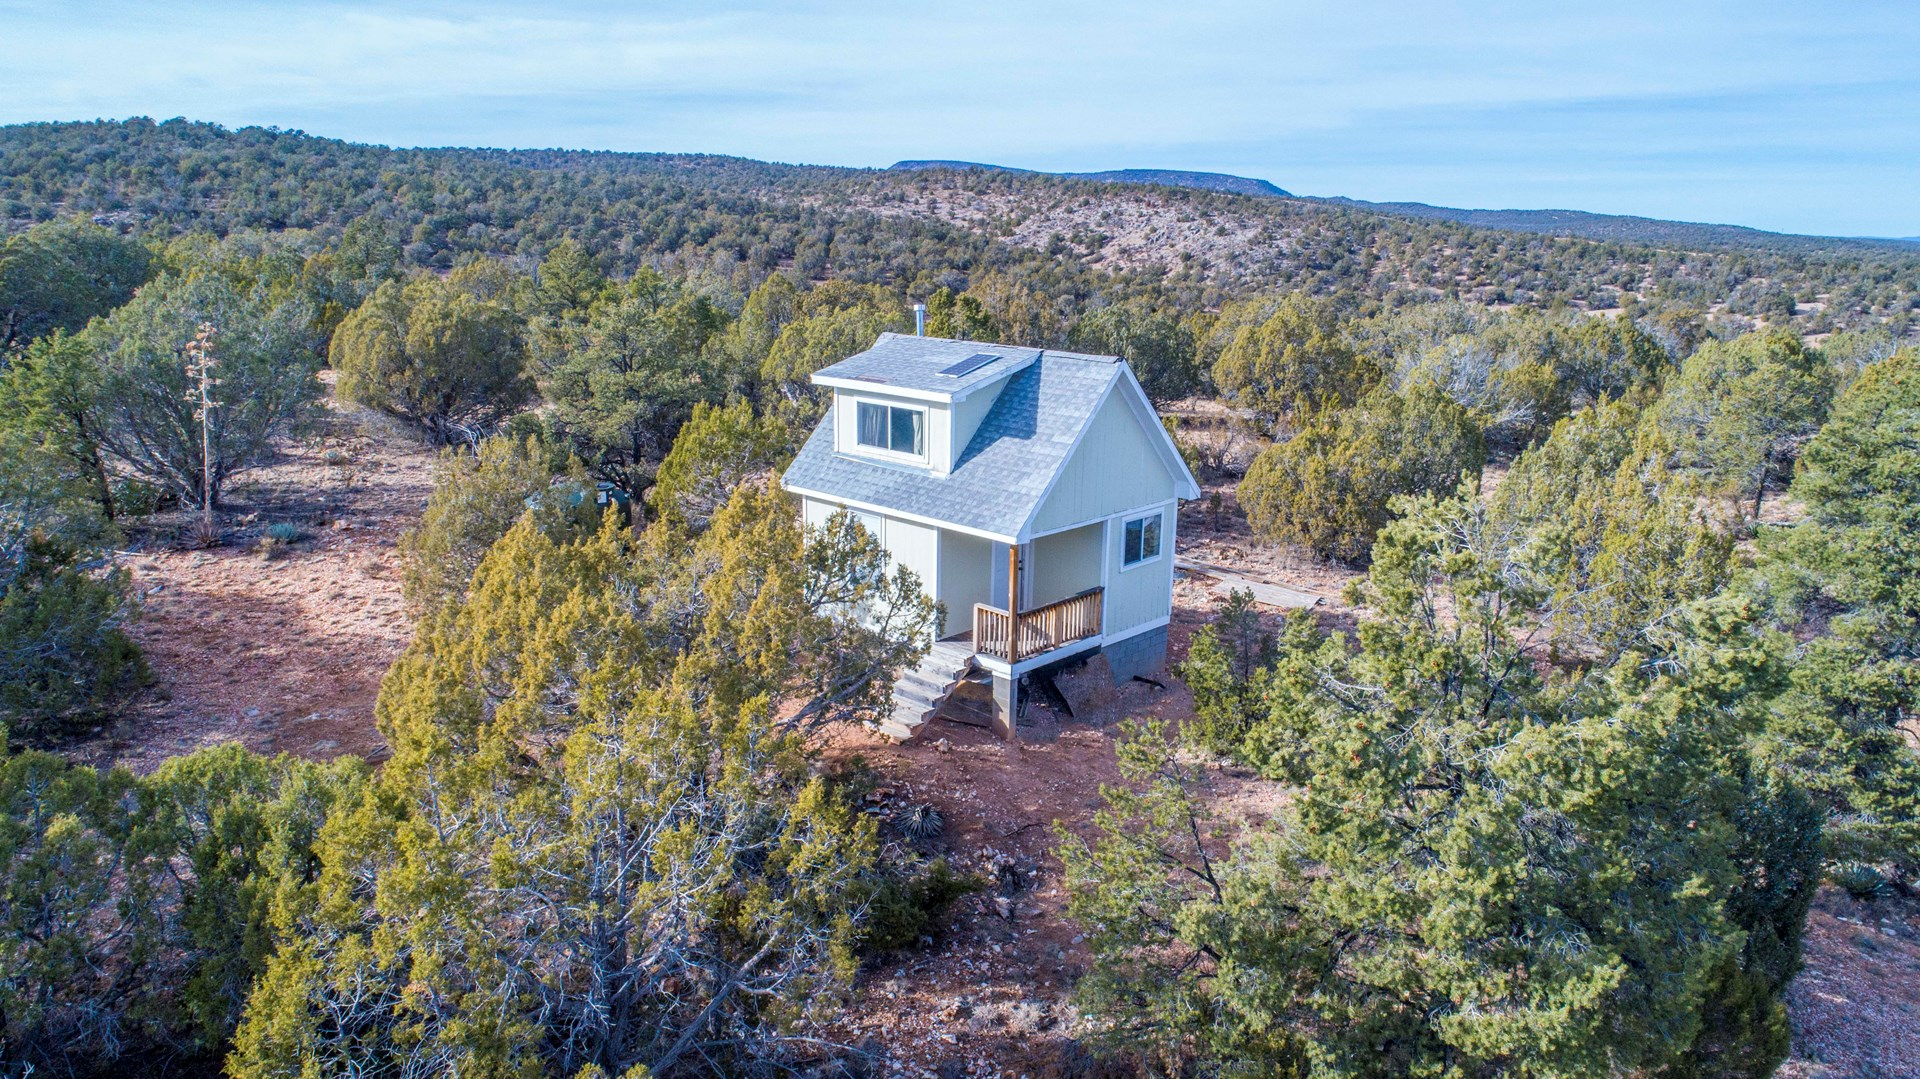 Cabin in Woods for Sale, Borders Public Land